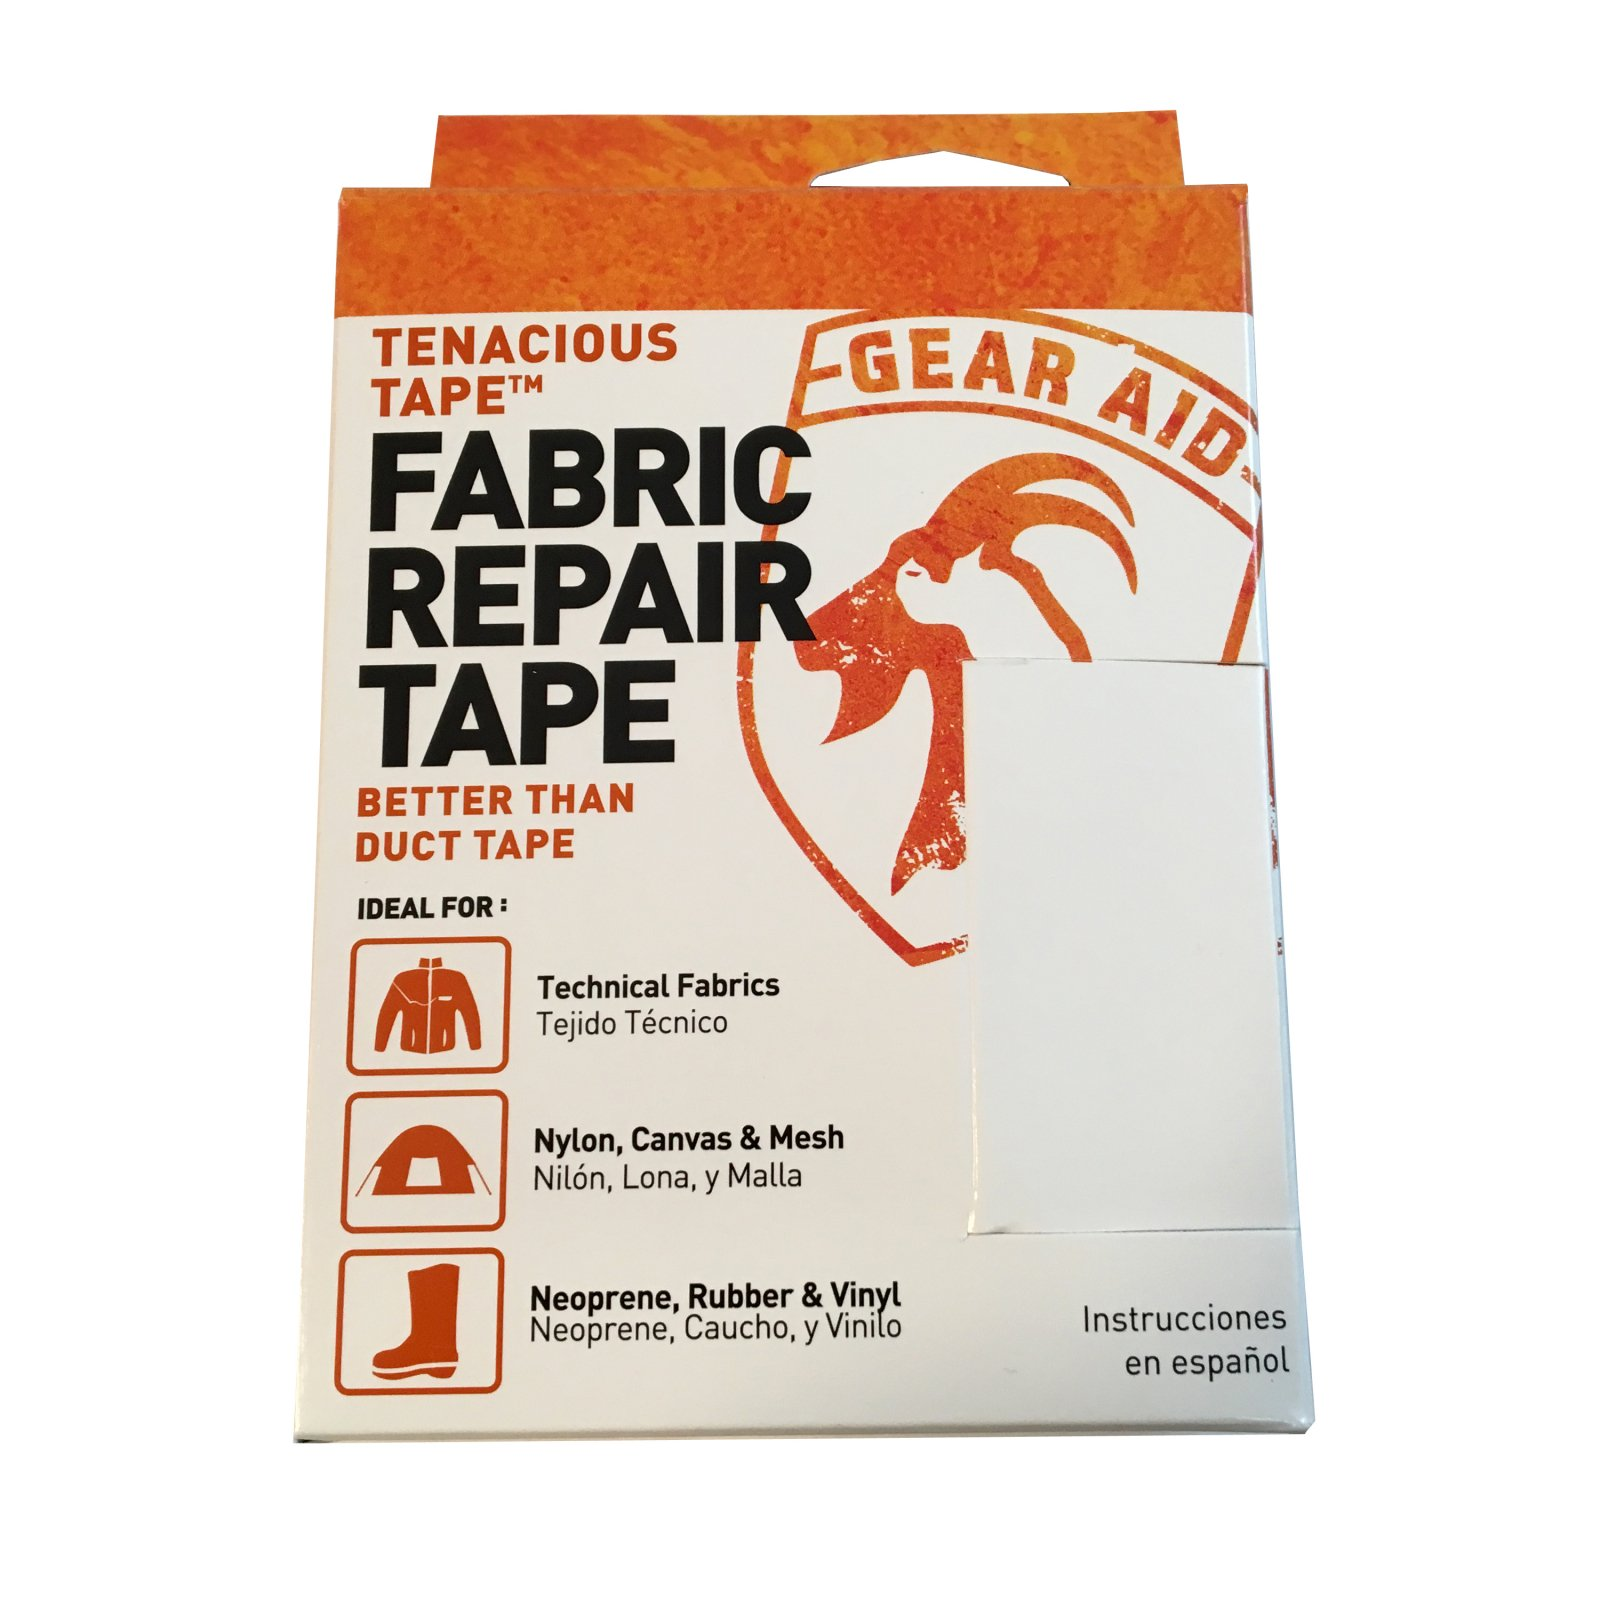 Gear Aid Tenacious Tape Fabric Repair 3 Inch Patches Outdoor Gear - 6pc Teal